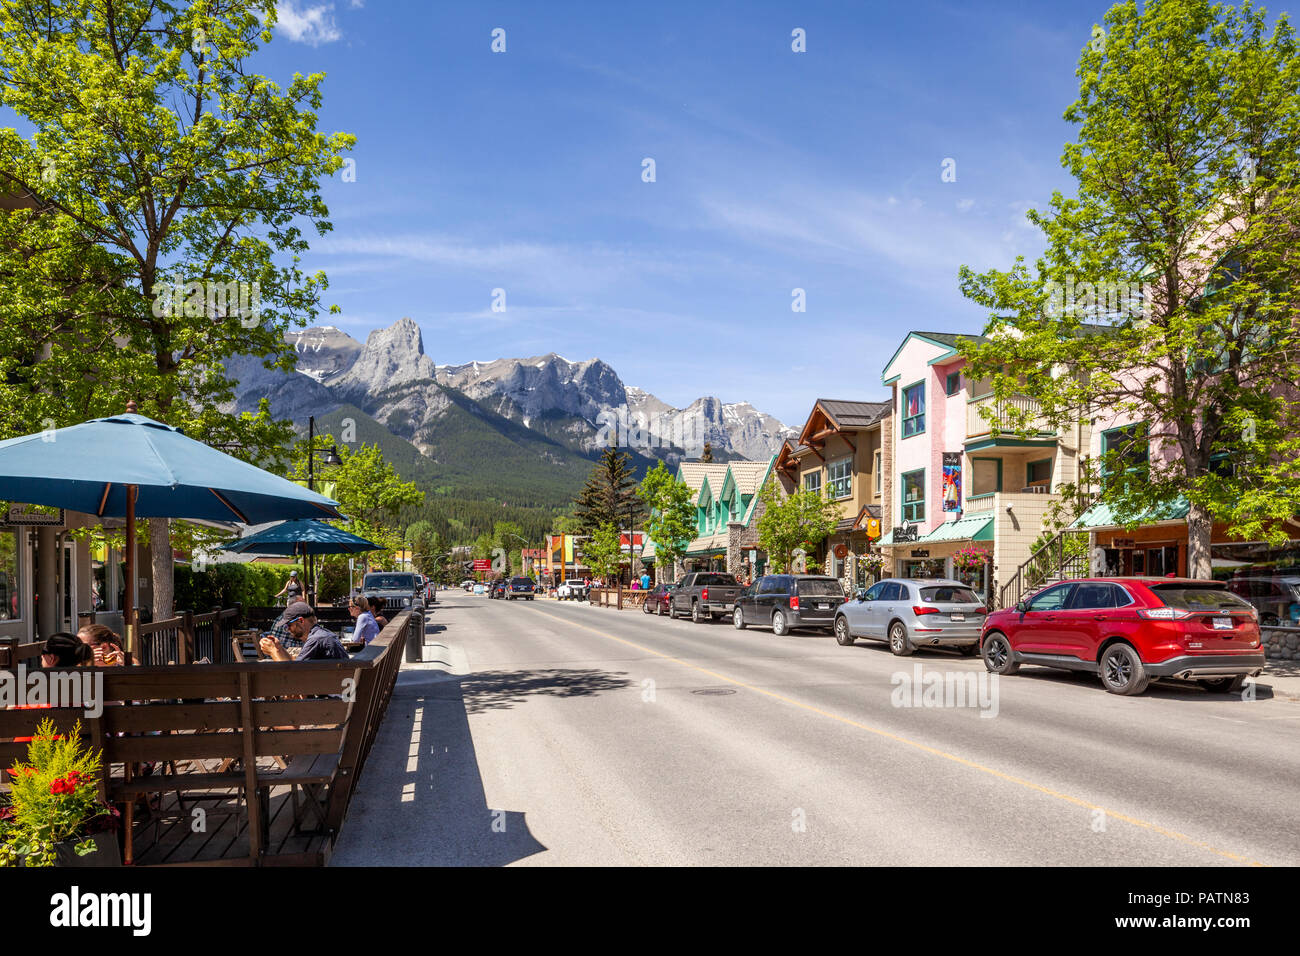 The town of Canmore on the western edge of the Rocky Mountains, Alberta, Canada - Stock Image